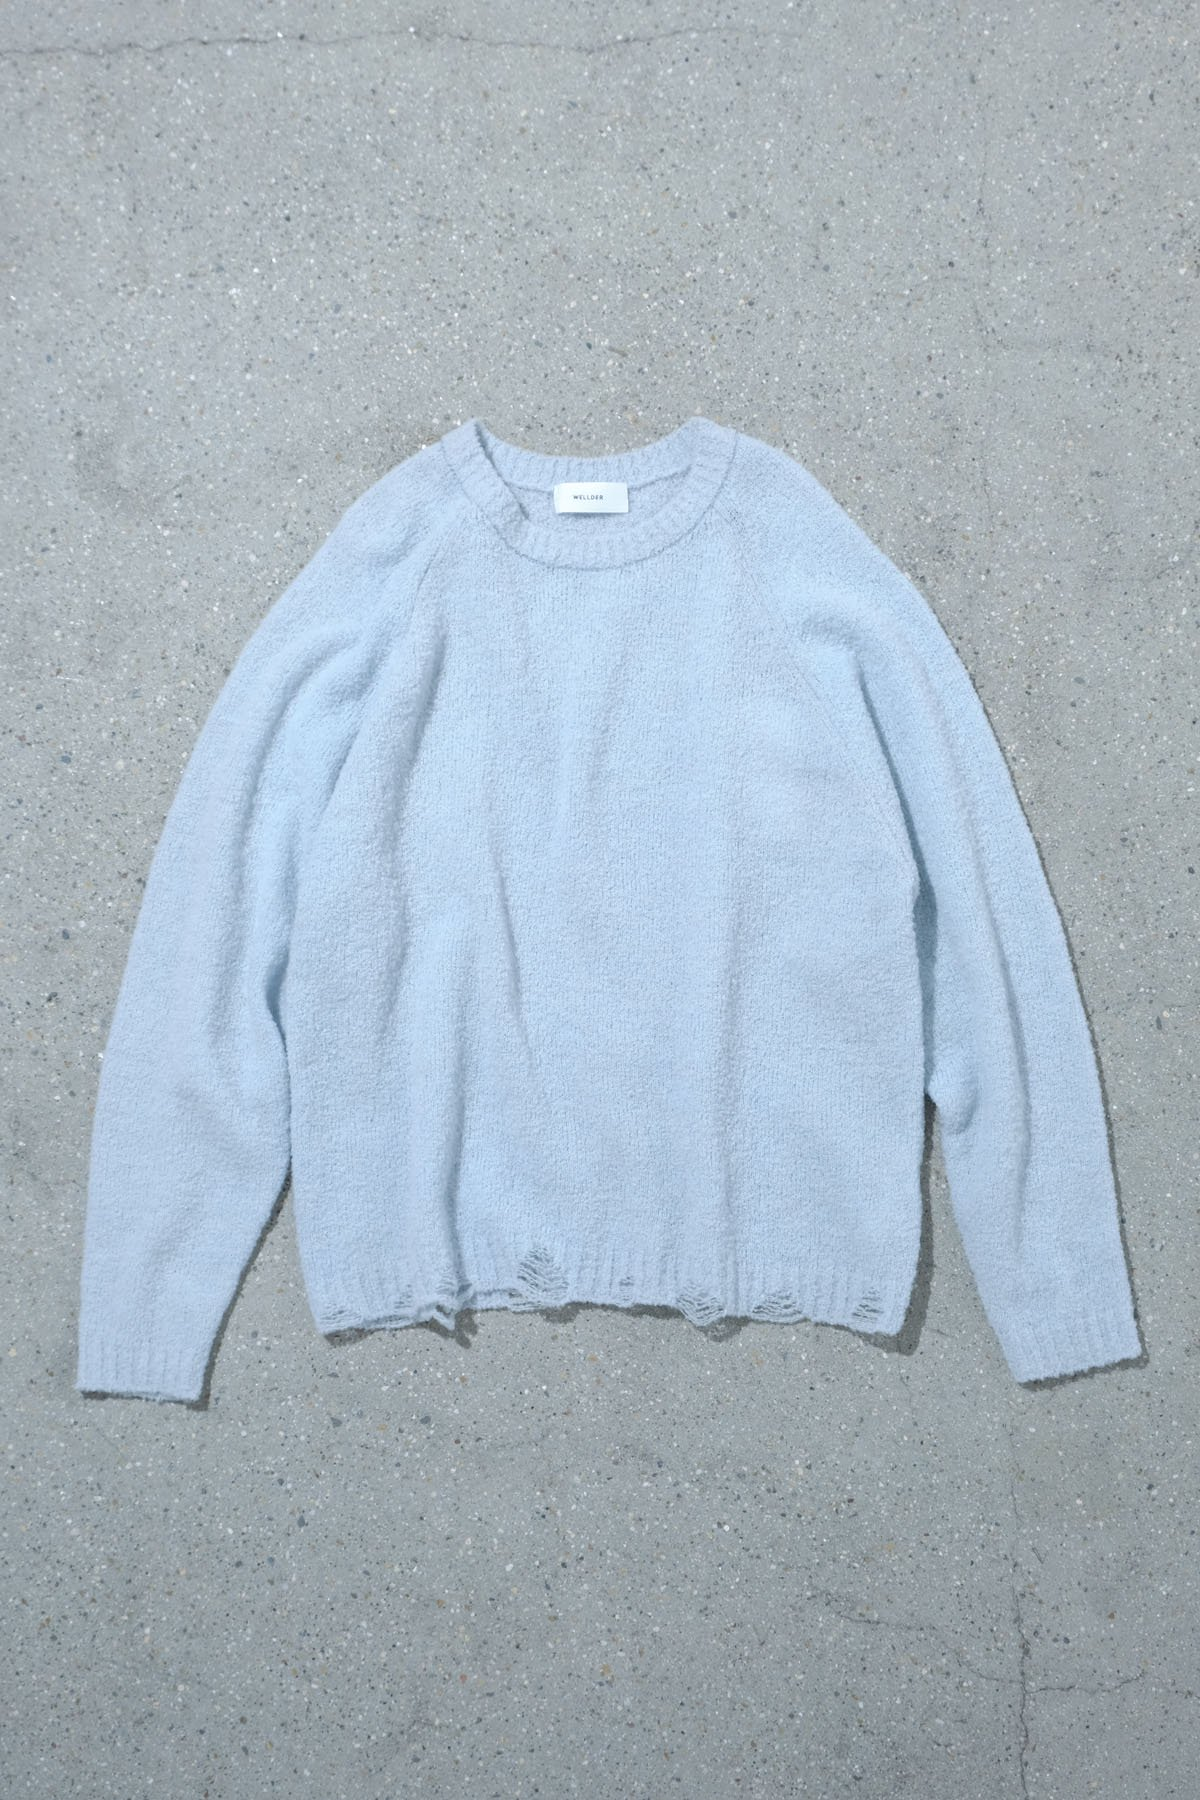 WELLDER / Damage Design Pull Over Knit (W)